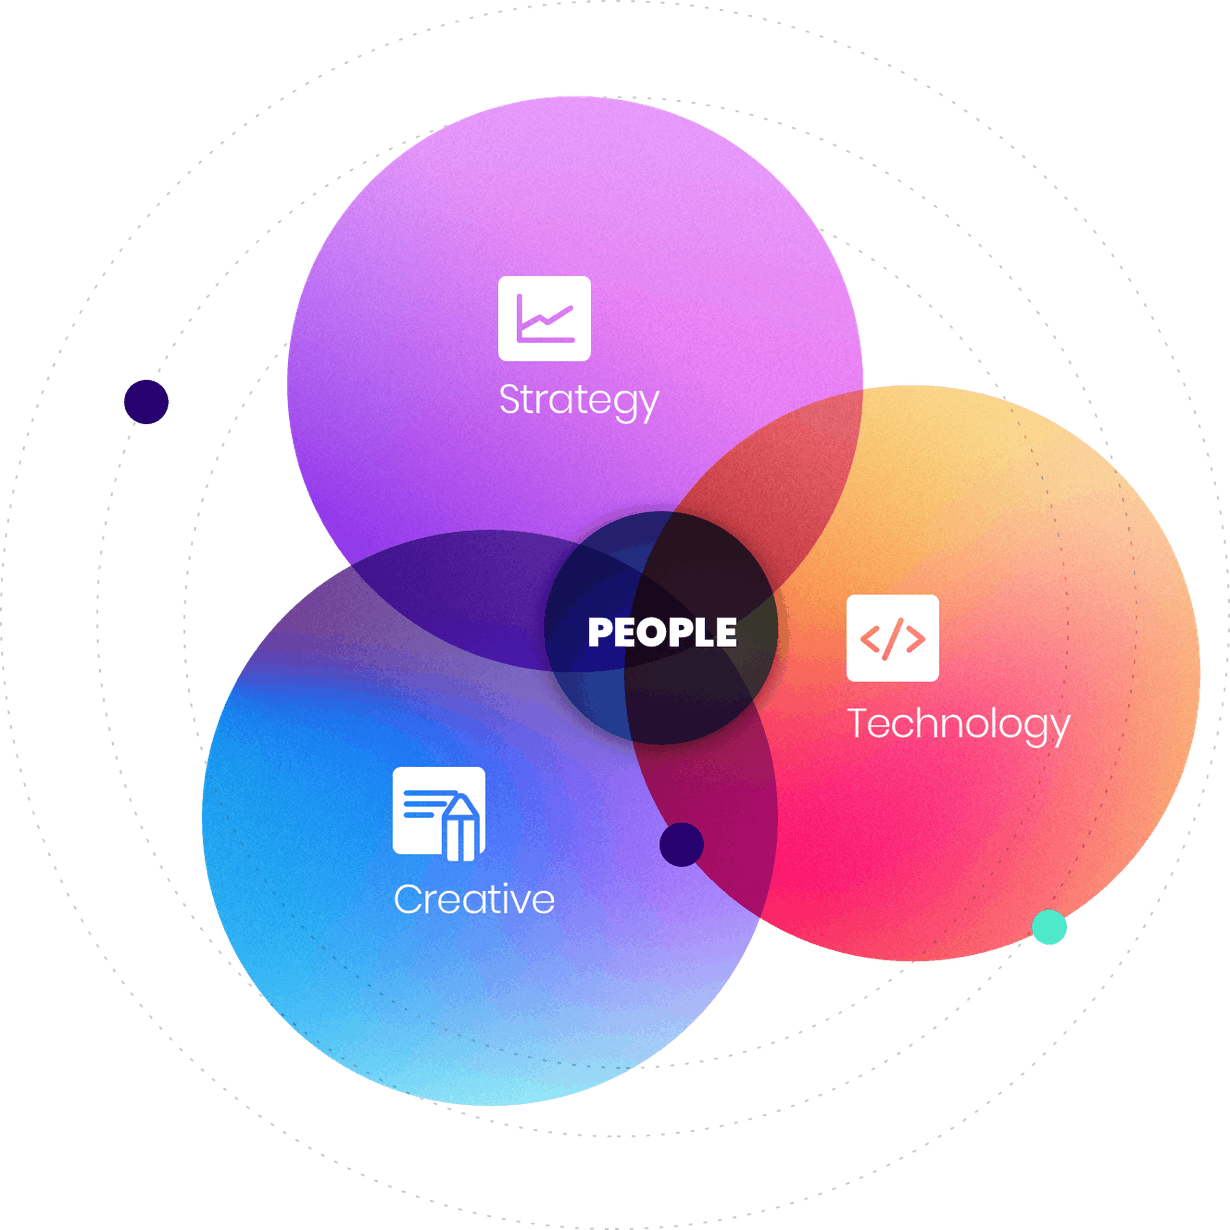 creative, strategy and technology